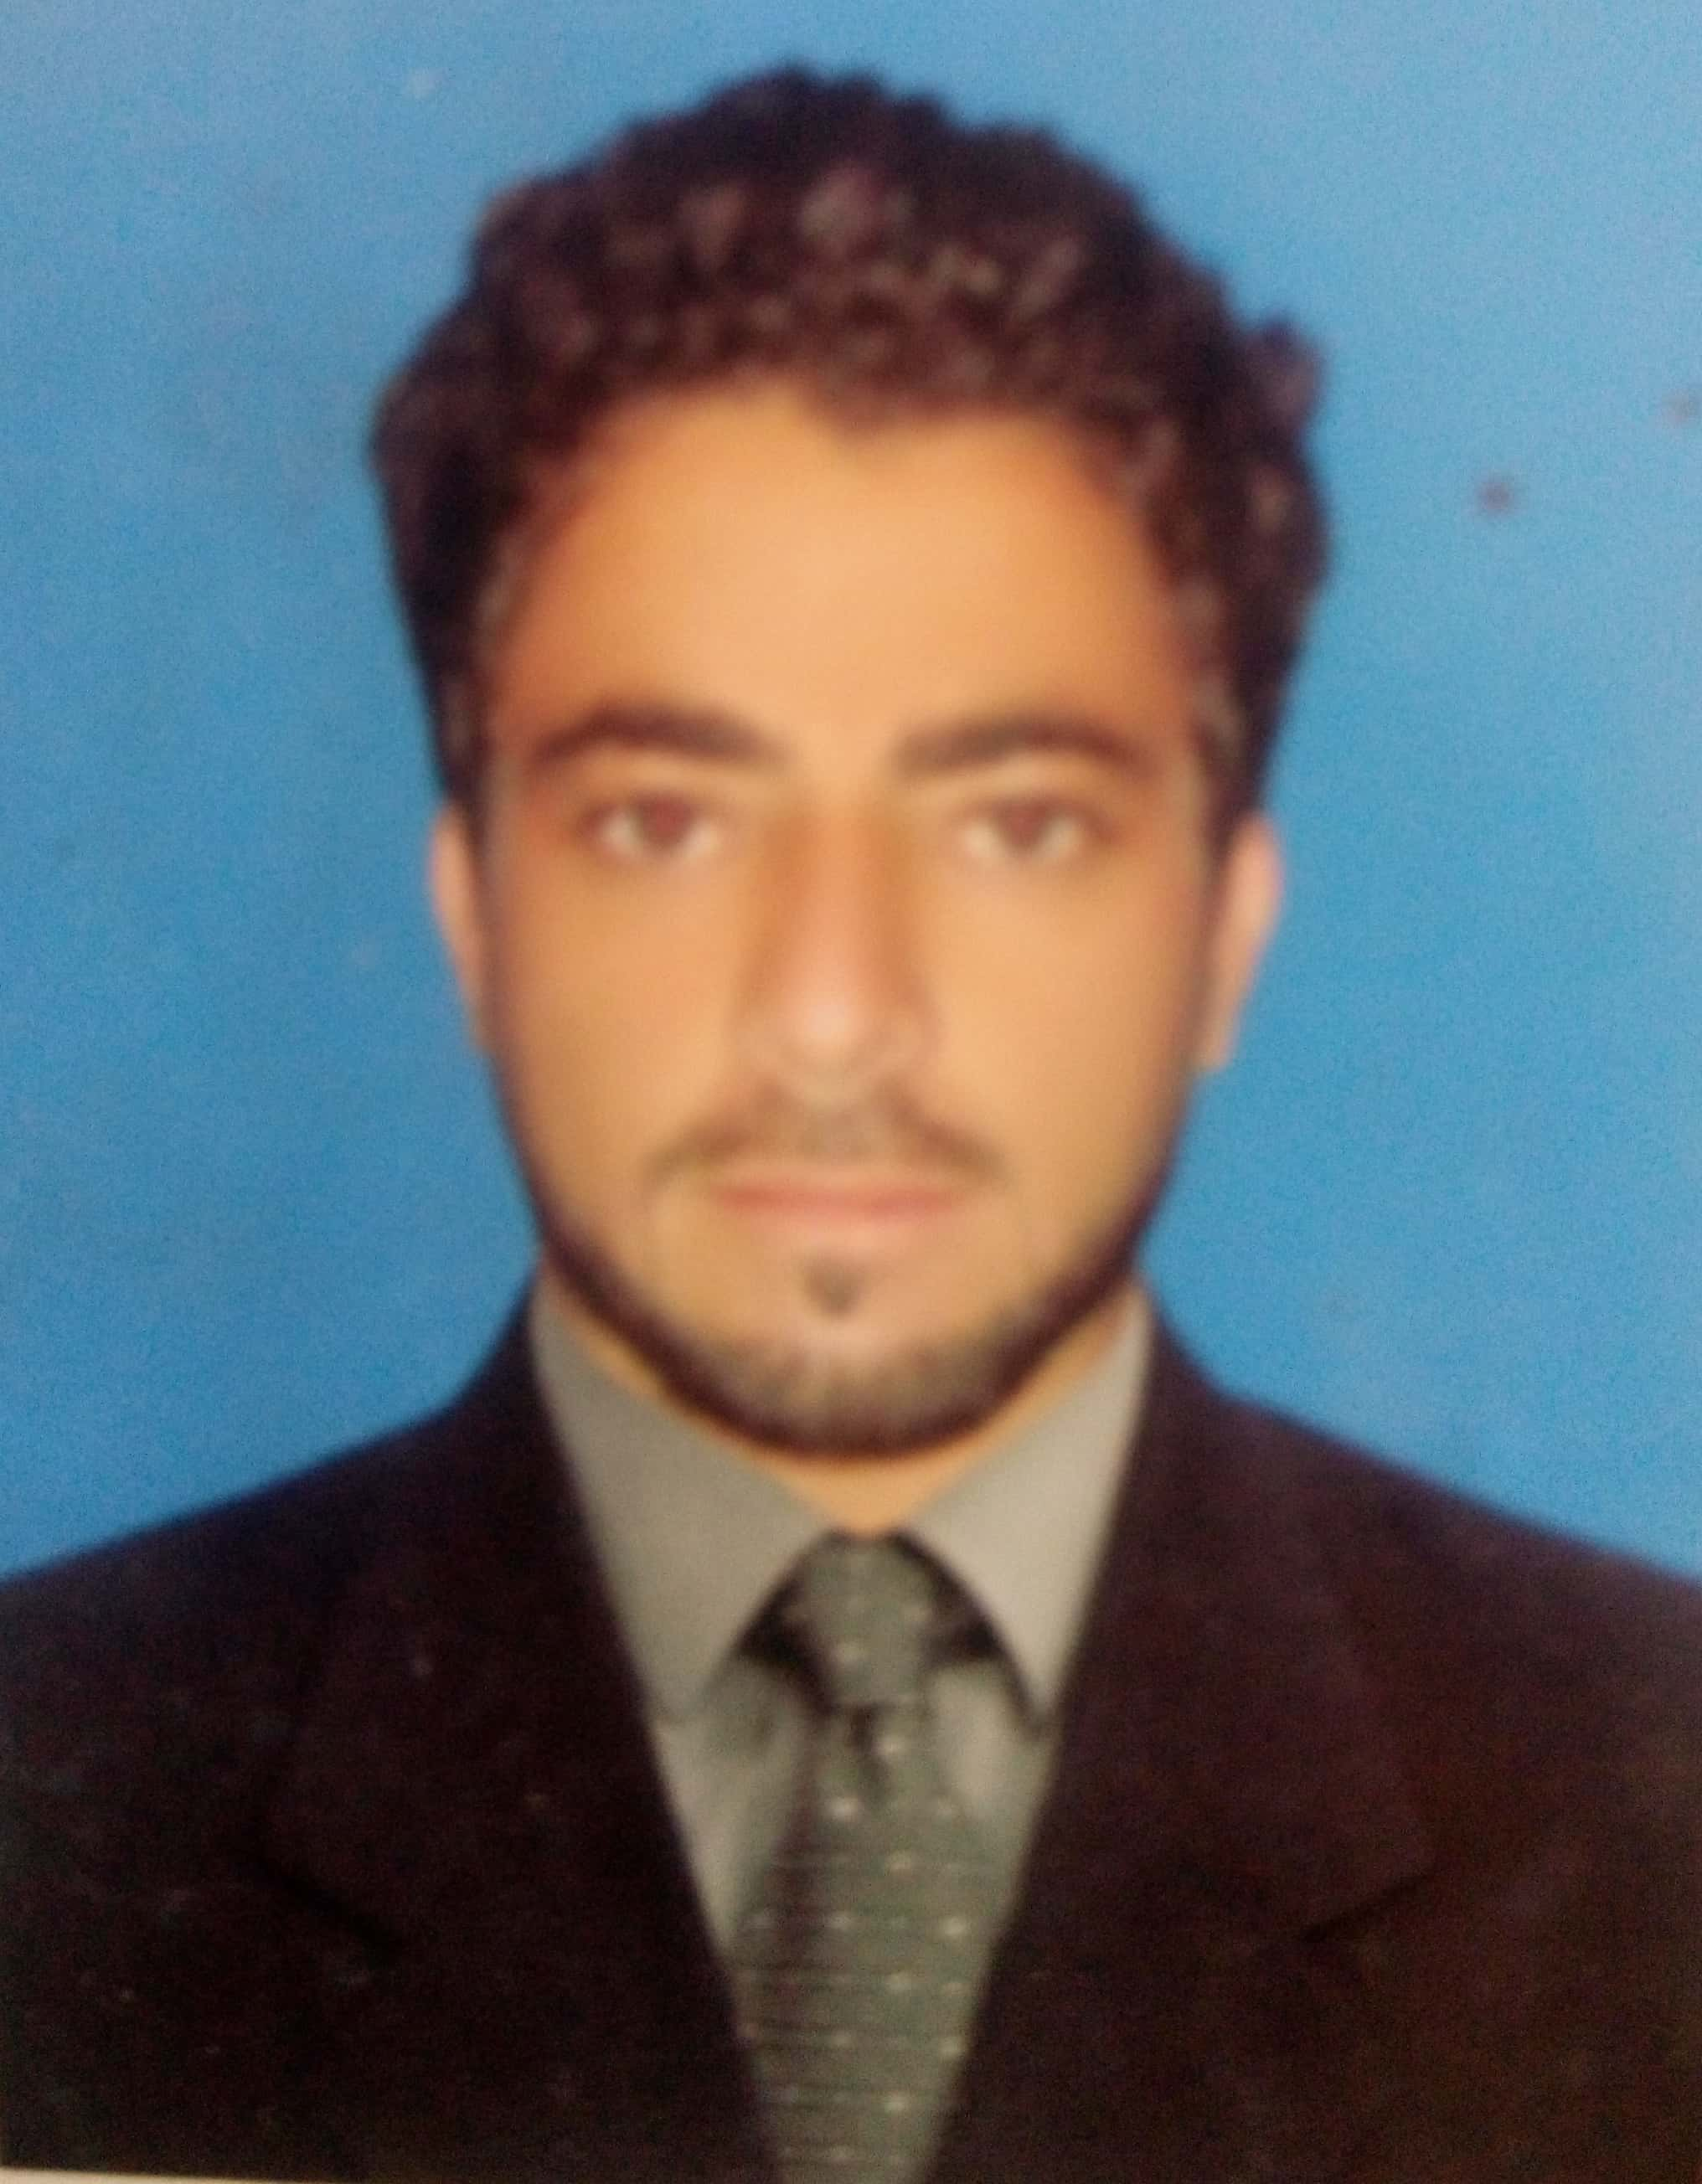 Muhammad Niaz Telecommunications Engineering, Quality And Reliability Testing, Testing / QA, Excel, Customer Experience, Customer Retention, Data Entry, Troubleshooting, English (US), Urdu